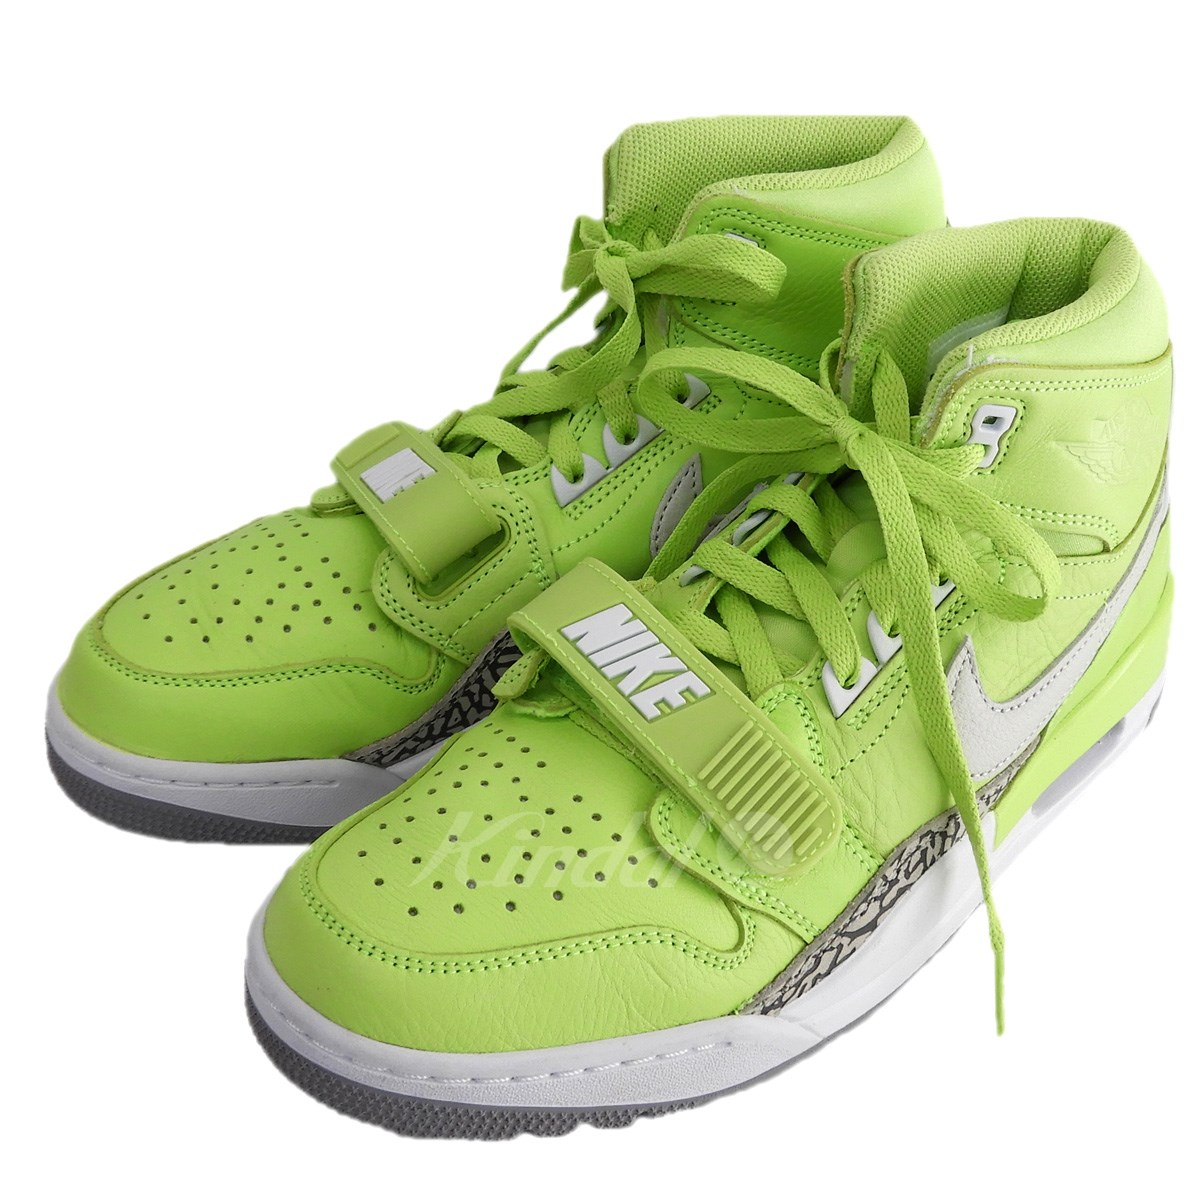 【中古】NIKE × JUST DON/DON C 「AIR JORDAN LEGACY 312 NRG」スニーカー 【送料無料】 【177190】 【KIND1641】